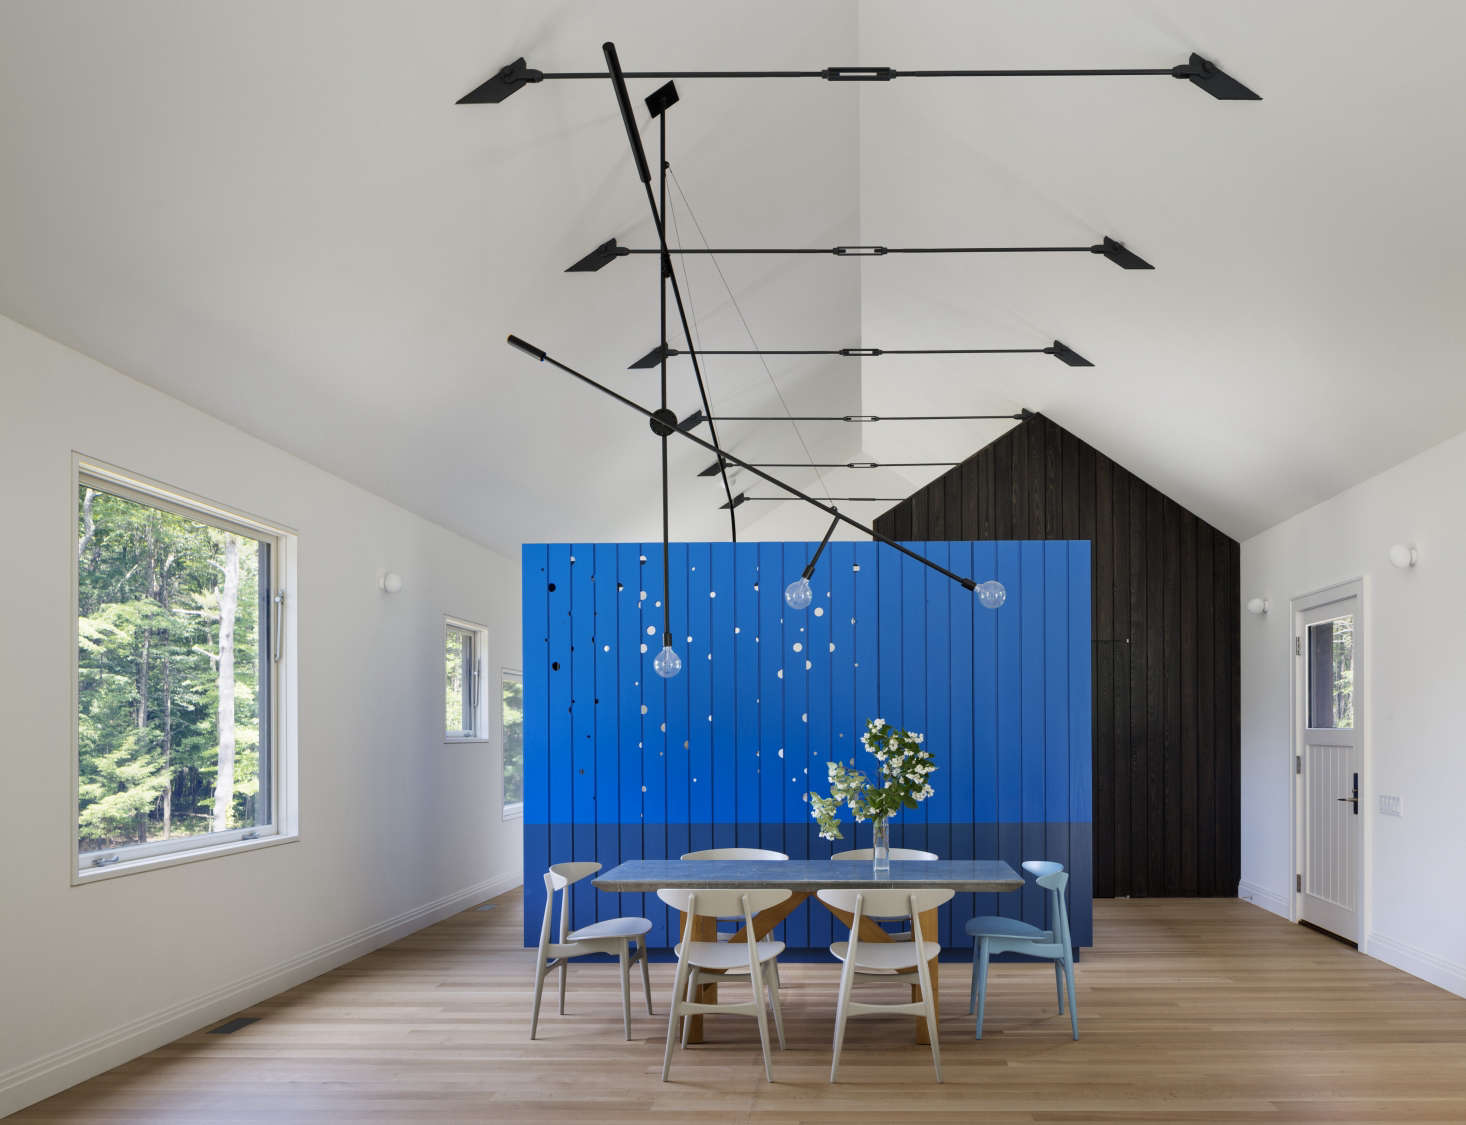 A screen as a room divider at Undermountain, a barn-style house in the Berkshires by O'Neill Rose Architects